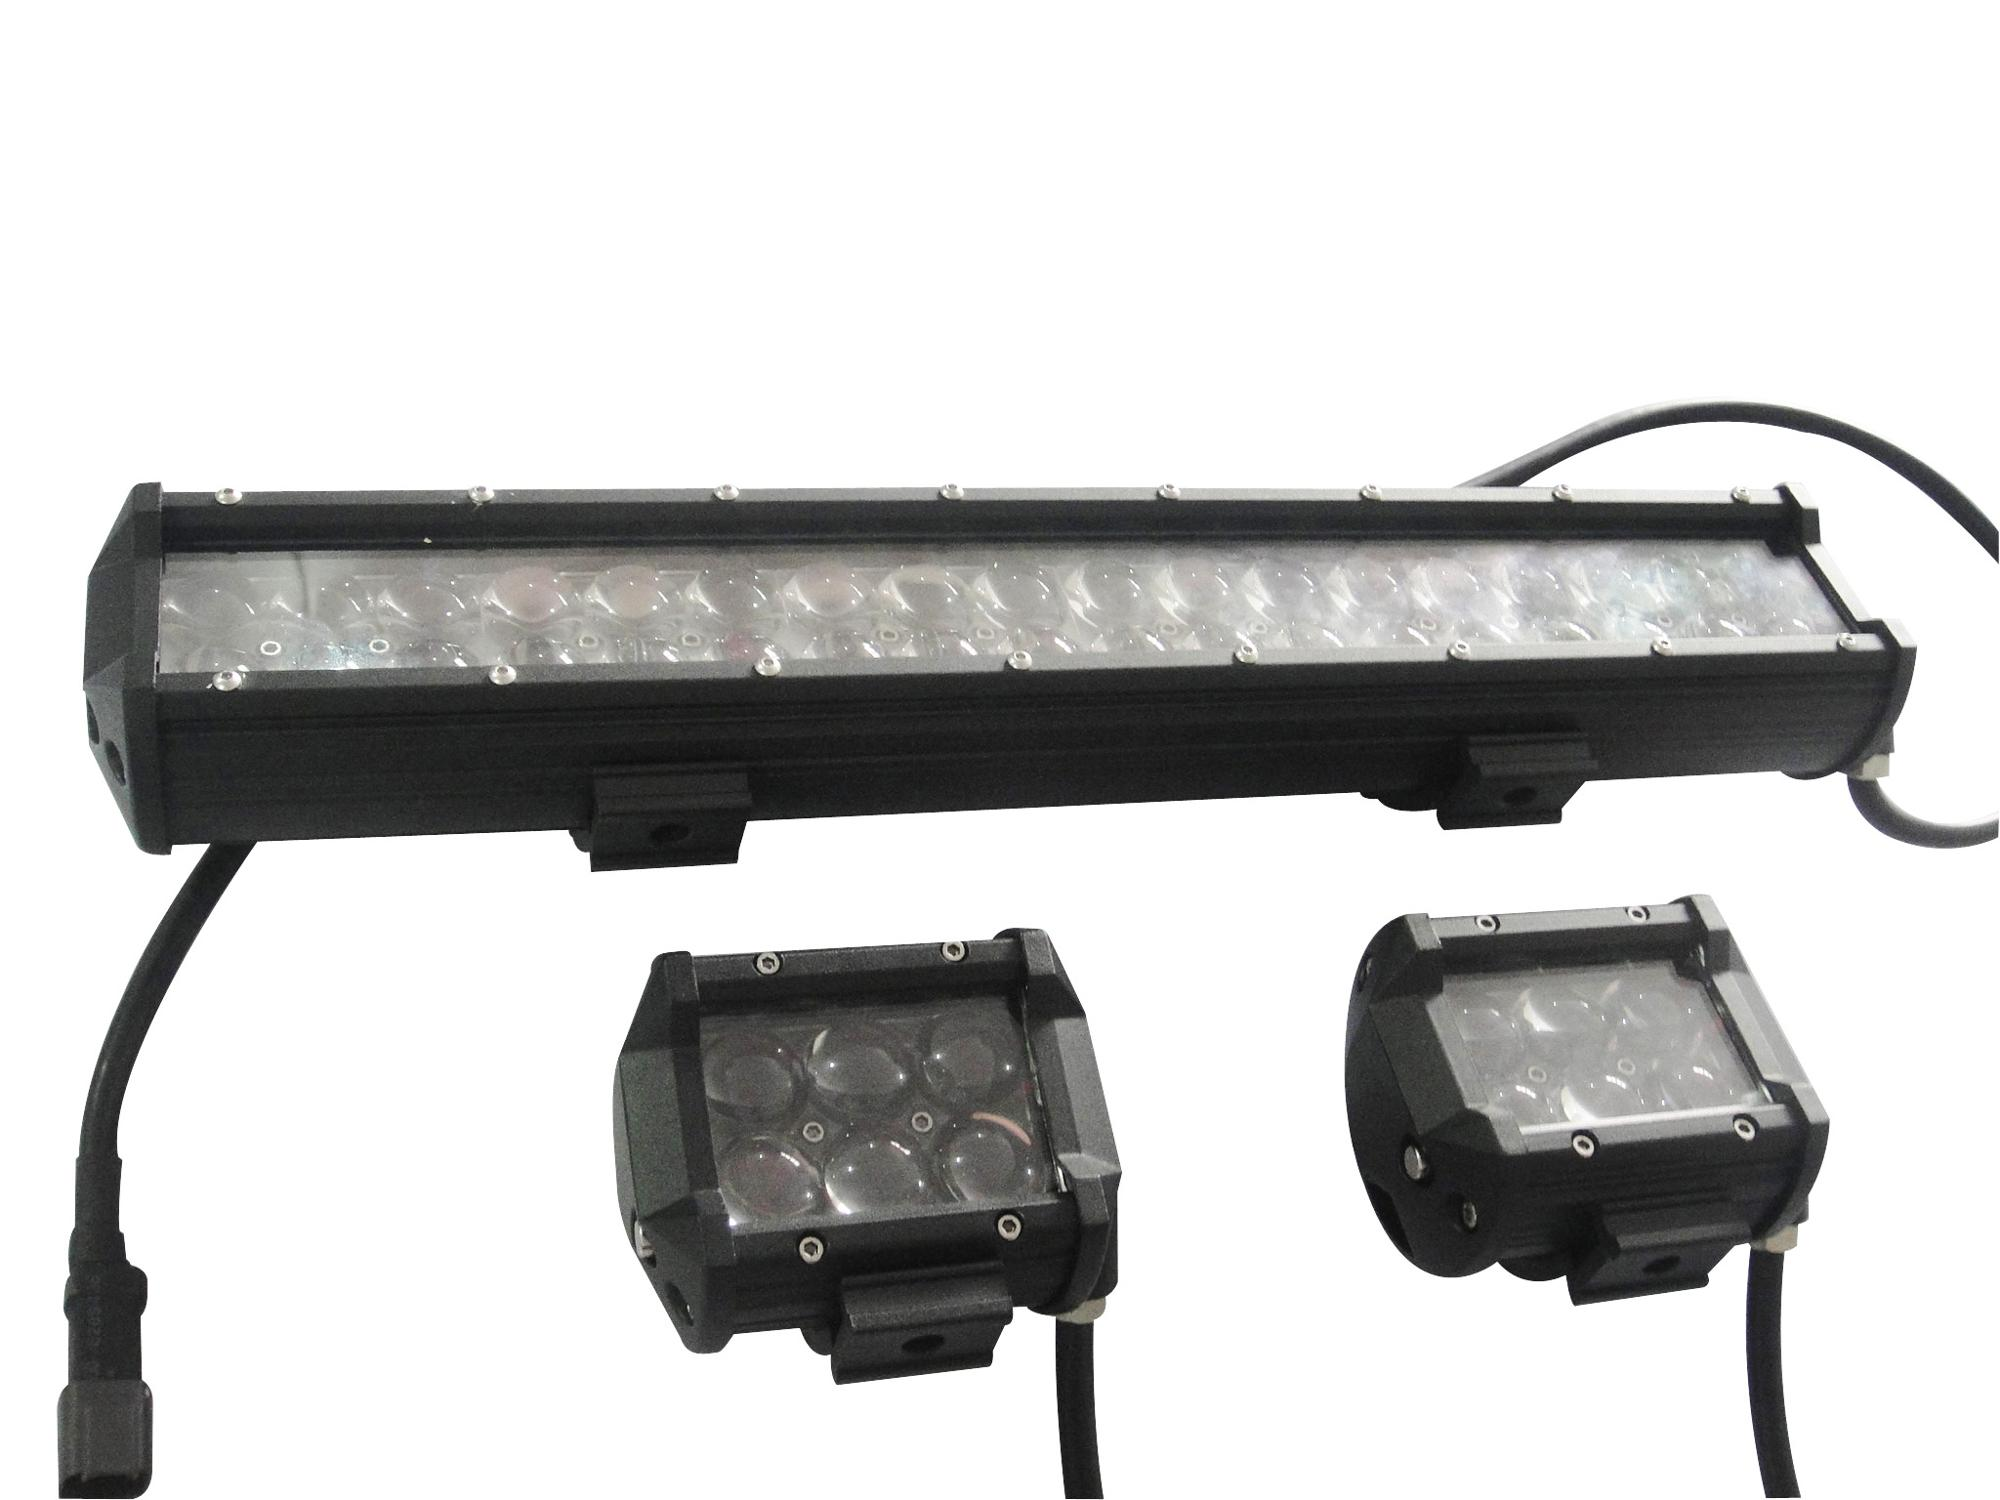 Waterproof IP67 2 rows truck light bars huiguang ce rohs approved off road light bar for car